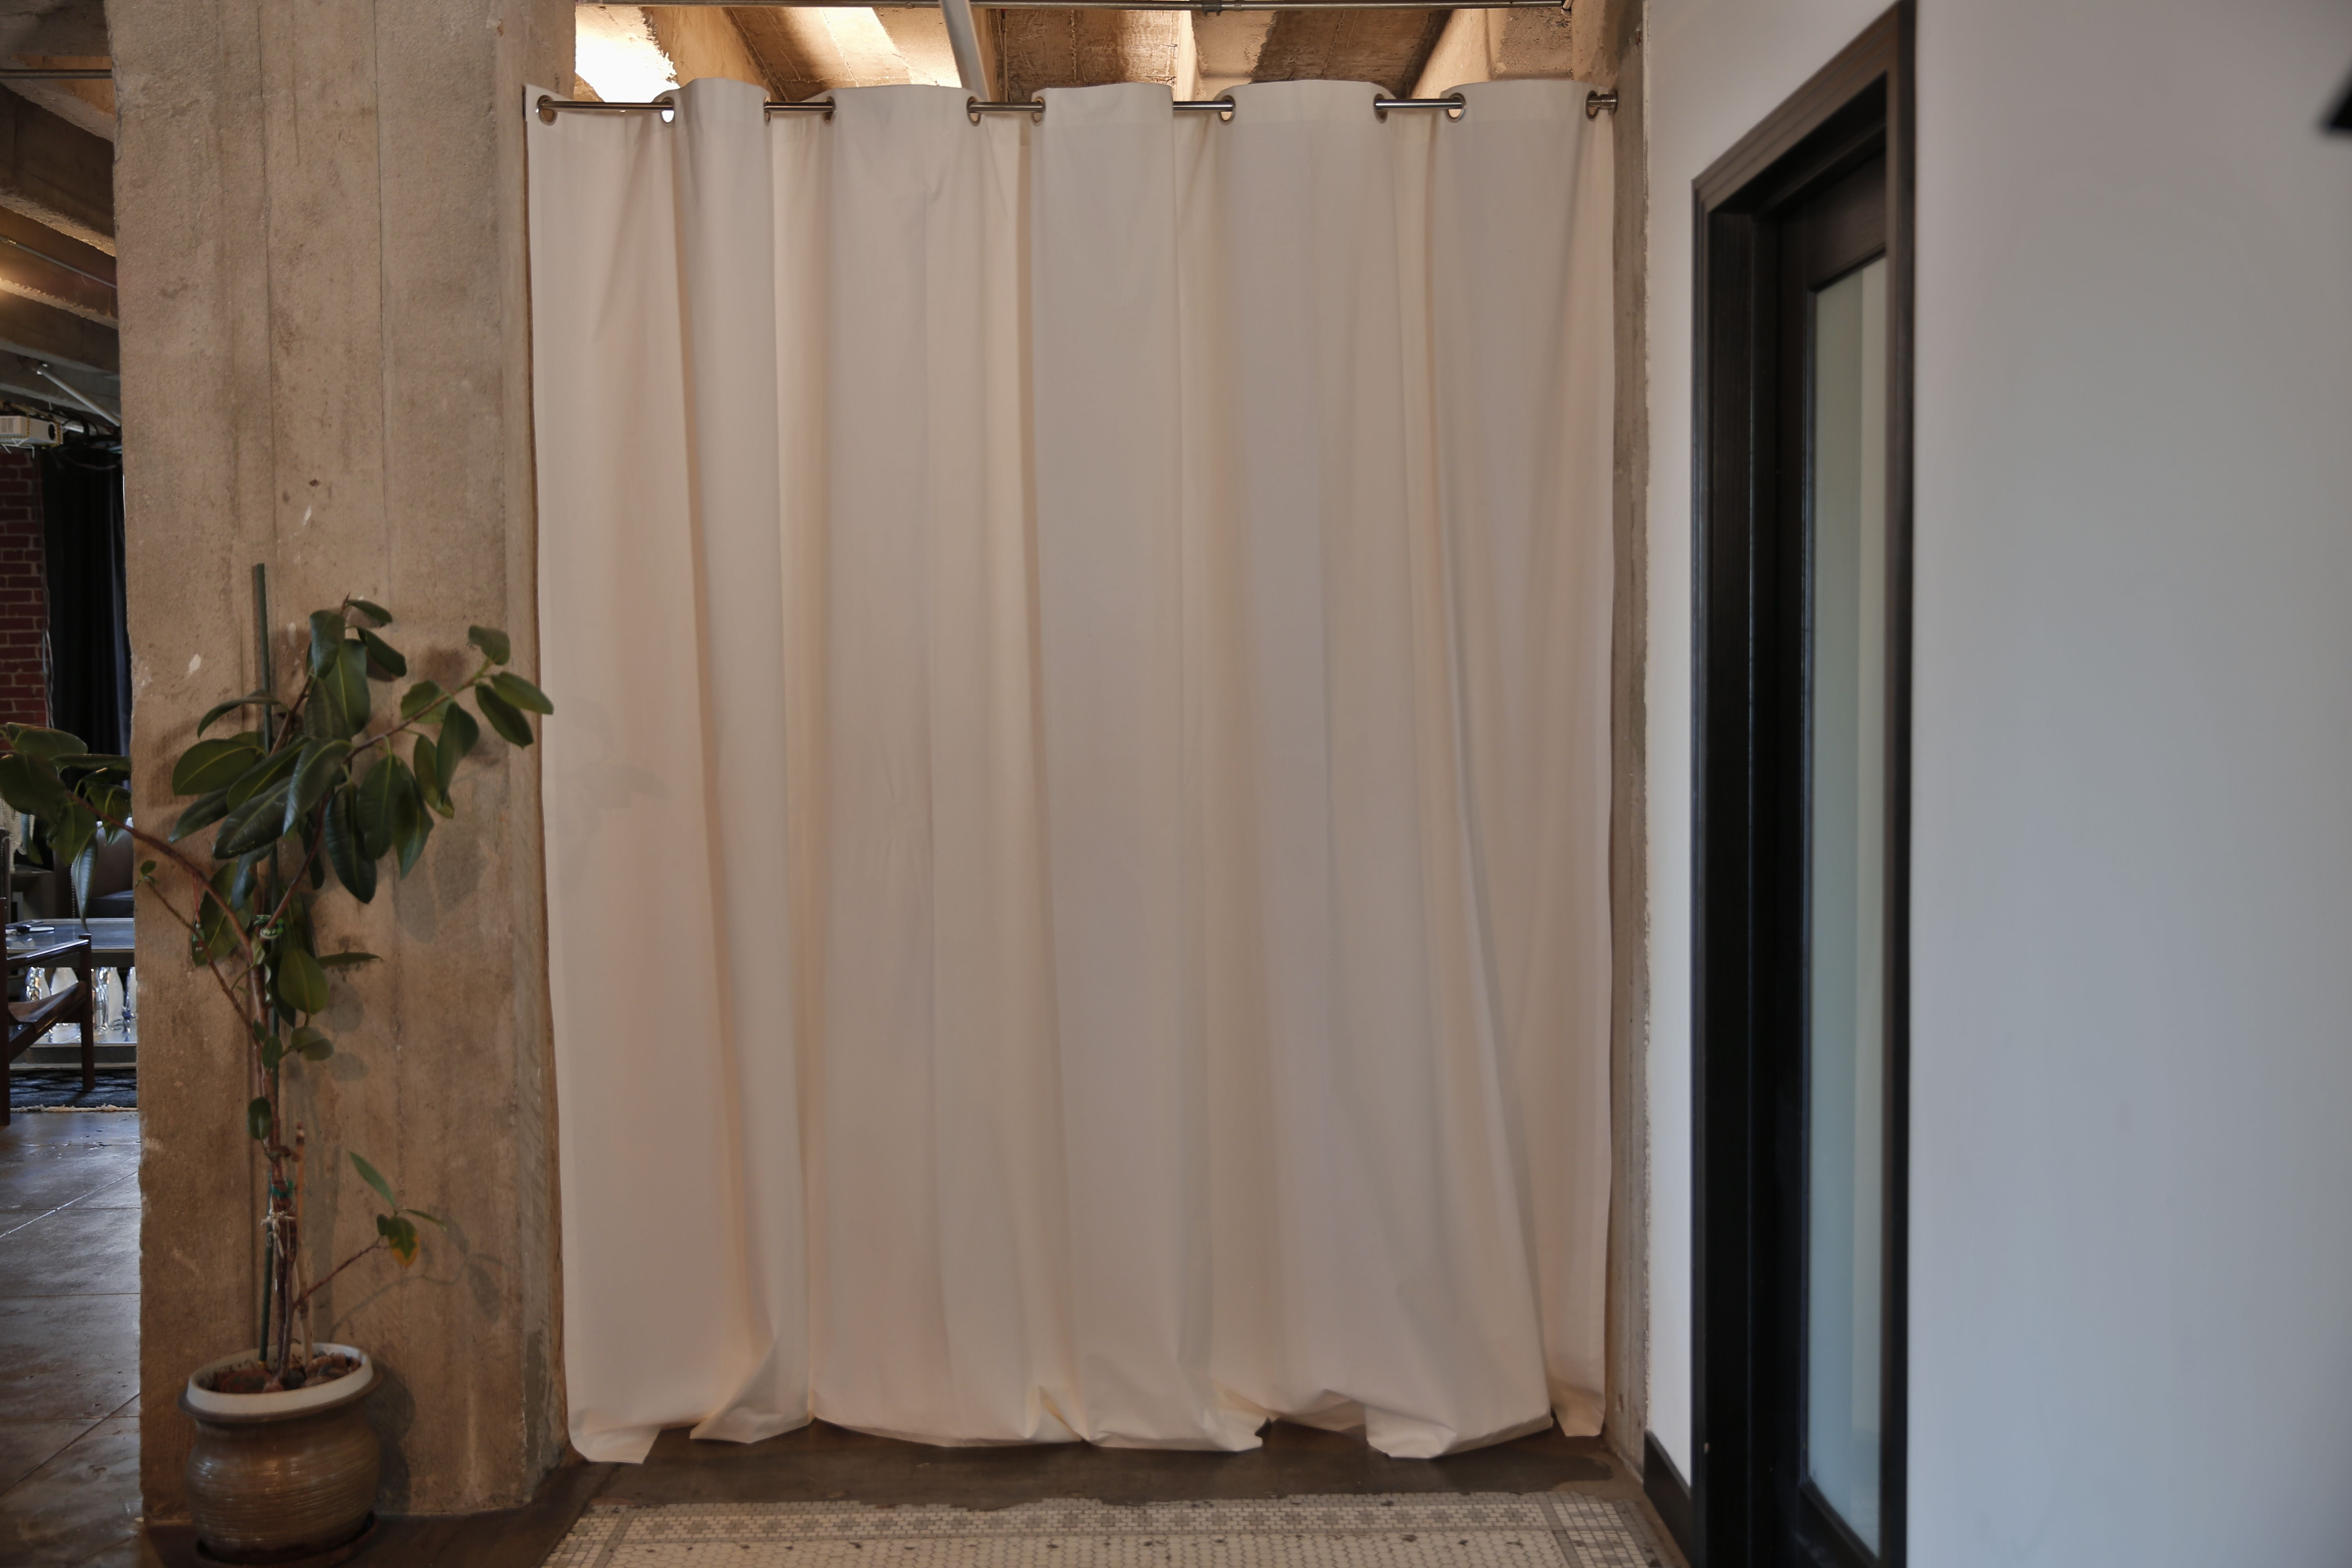 Loft bedroom privacy ideas  Tension rod room divider kits provide an innovative way to create